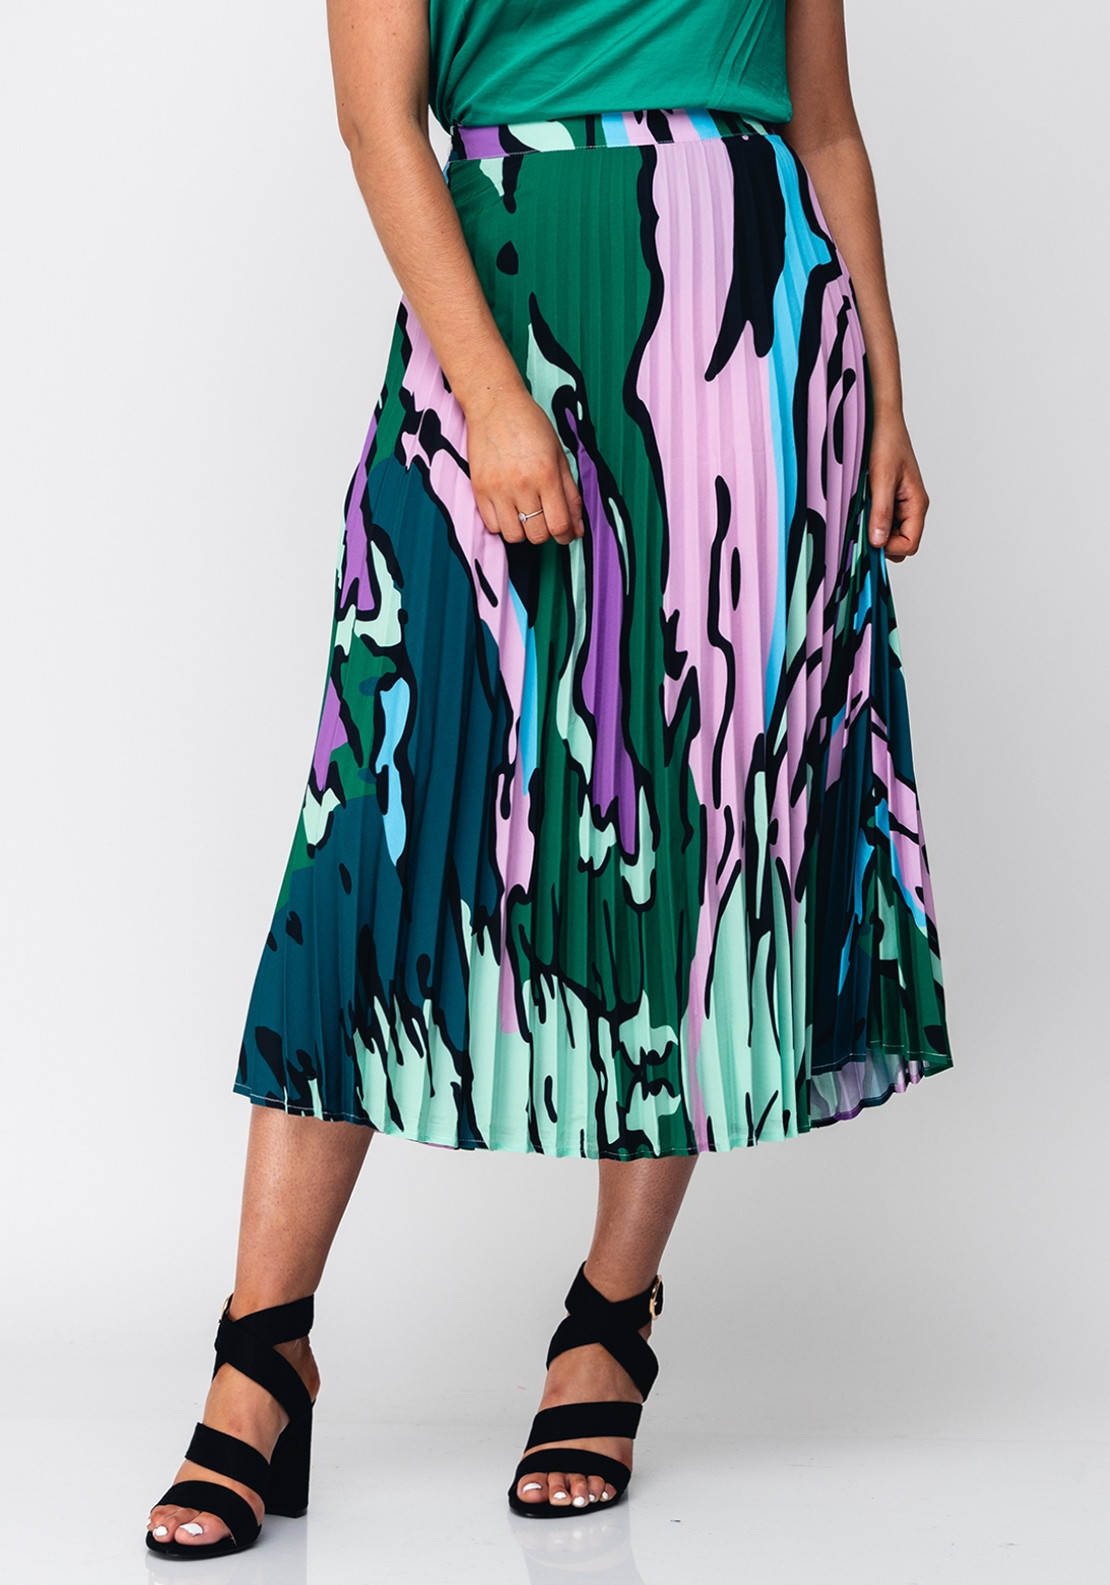 6a9b14a52888 Seventy1 Abstract Print Pleated Skirt, Green. Be the first to review this  product